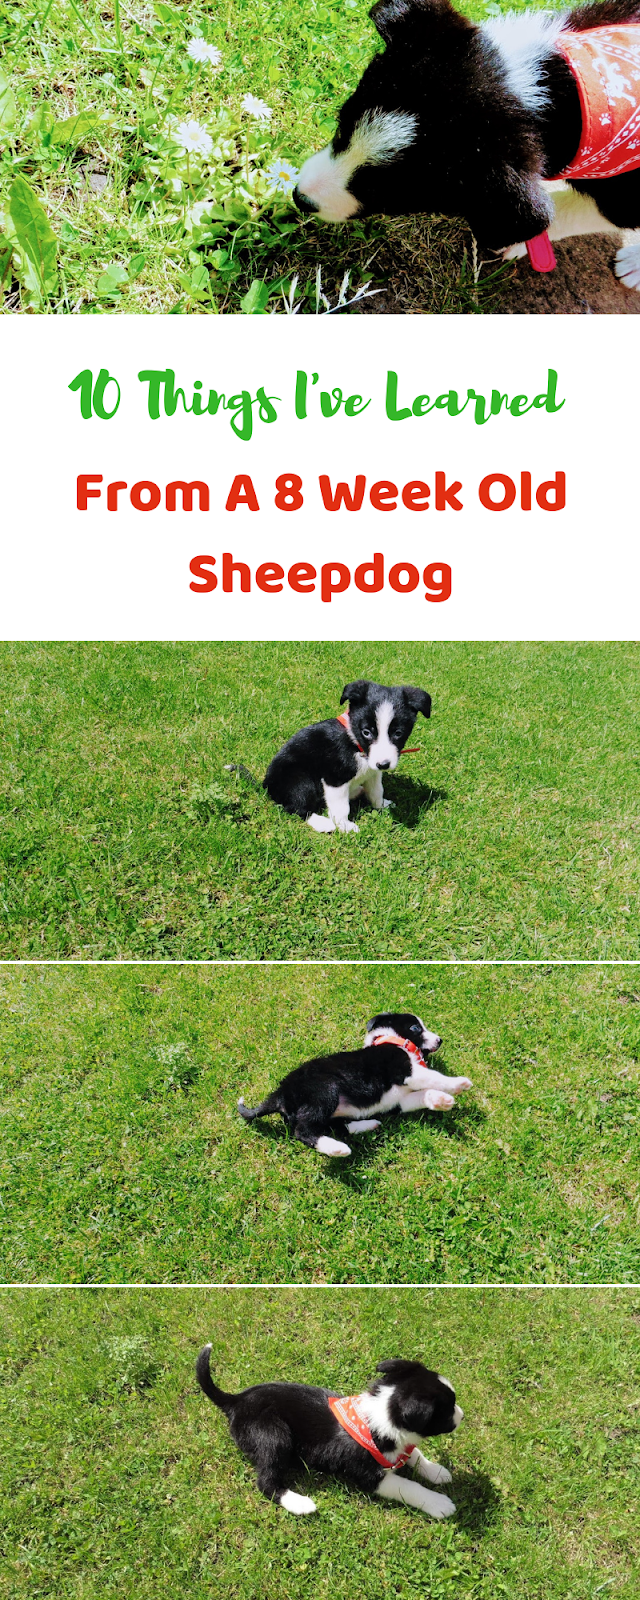 10 Things I've Learned From A 8 Week Old Sheepdog